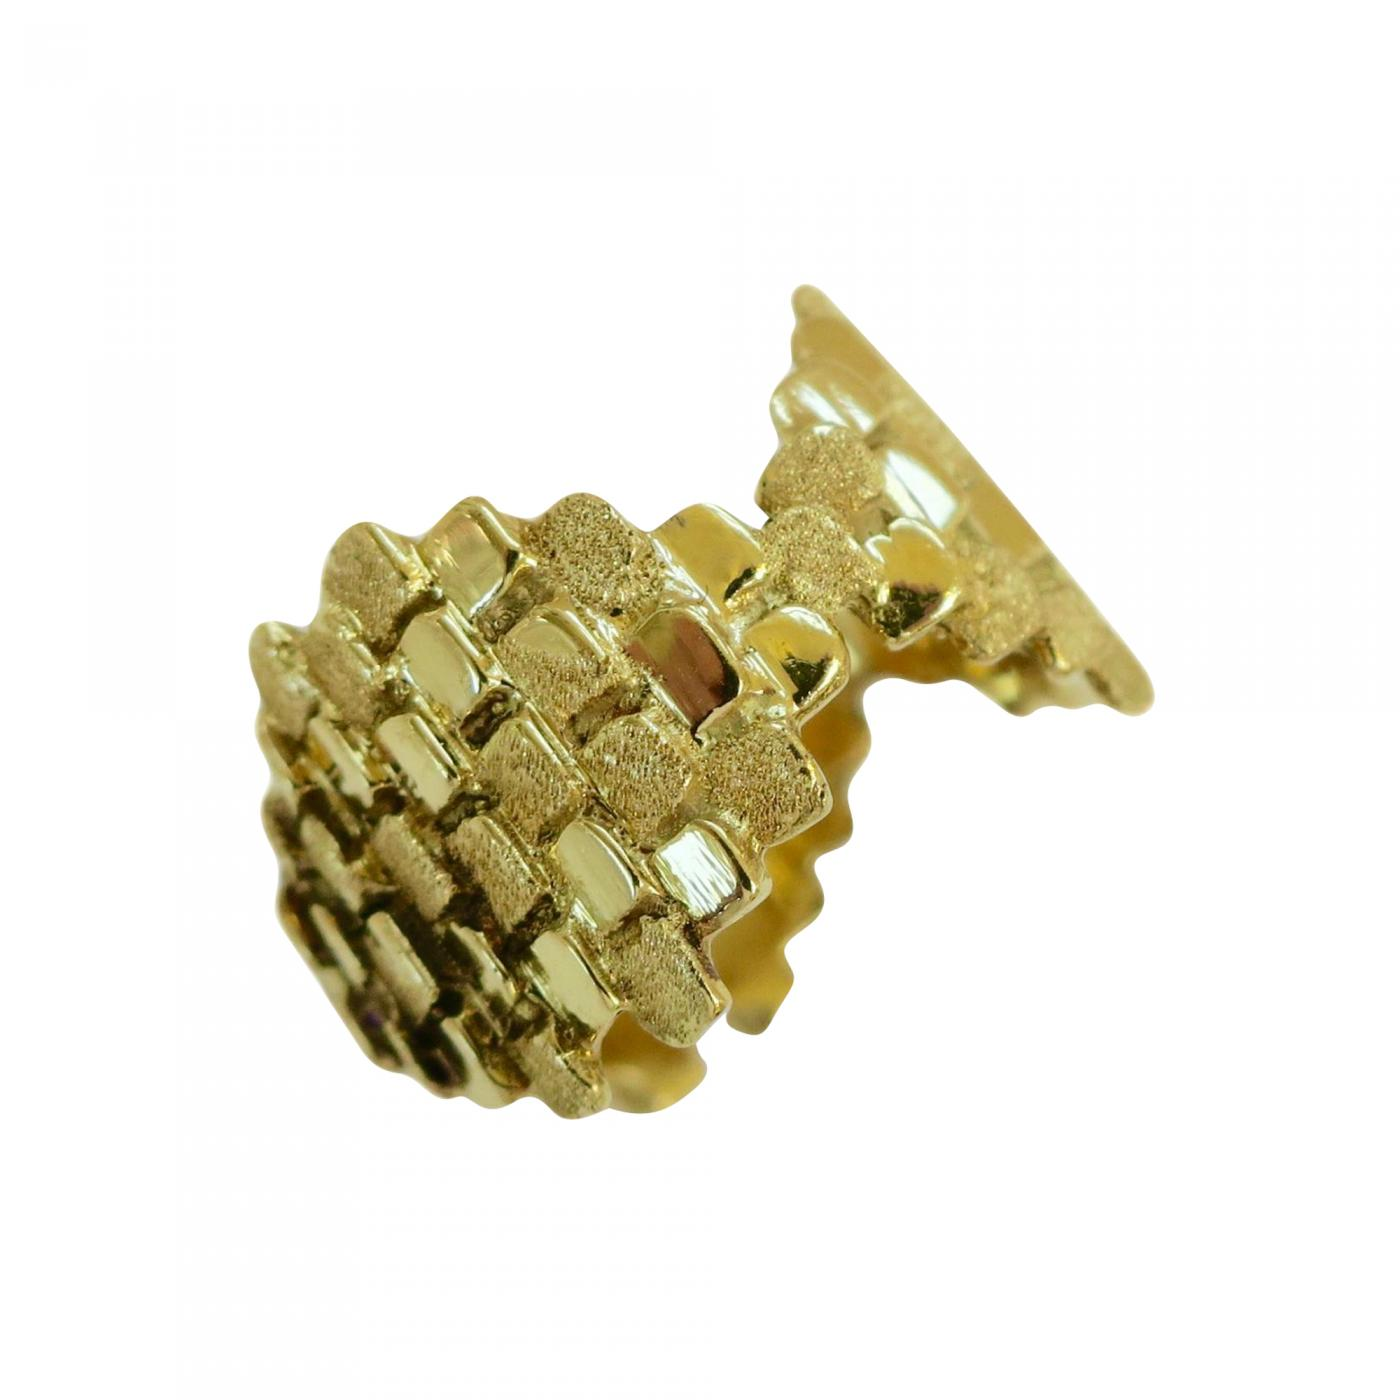 prices whp gold amazon at jewellery online yellow and ring in store low rings dp diamond buy india